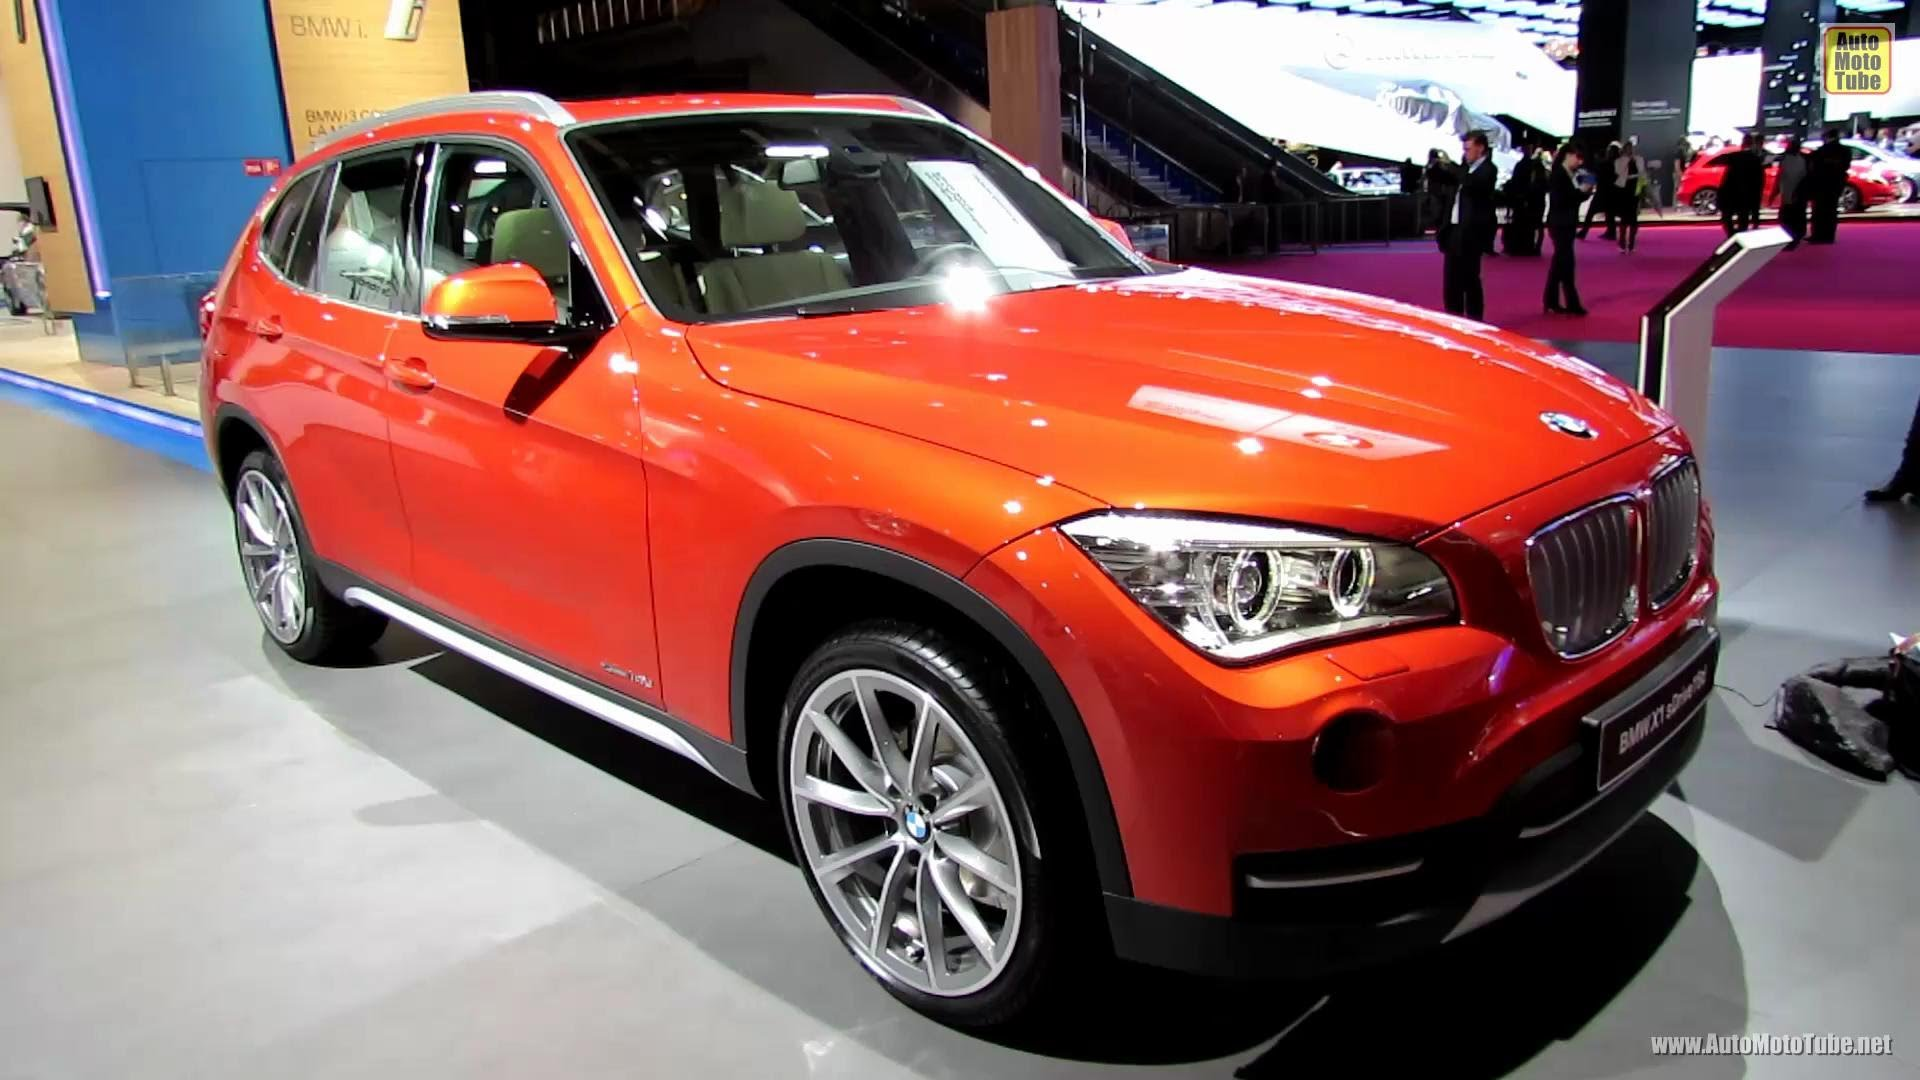 2013 BMW X1 sDrive 16d xLine - Exterior and Interior Walkaround - 2012 Paris Auto Show